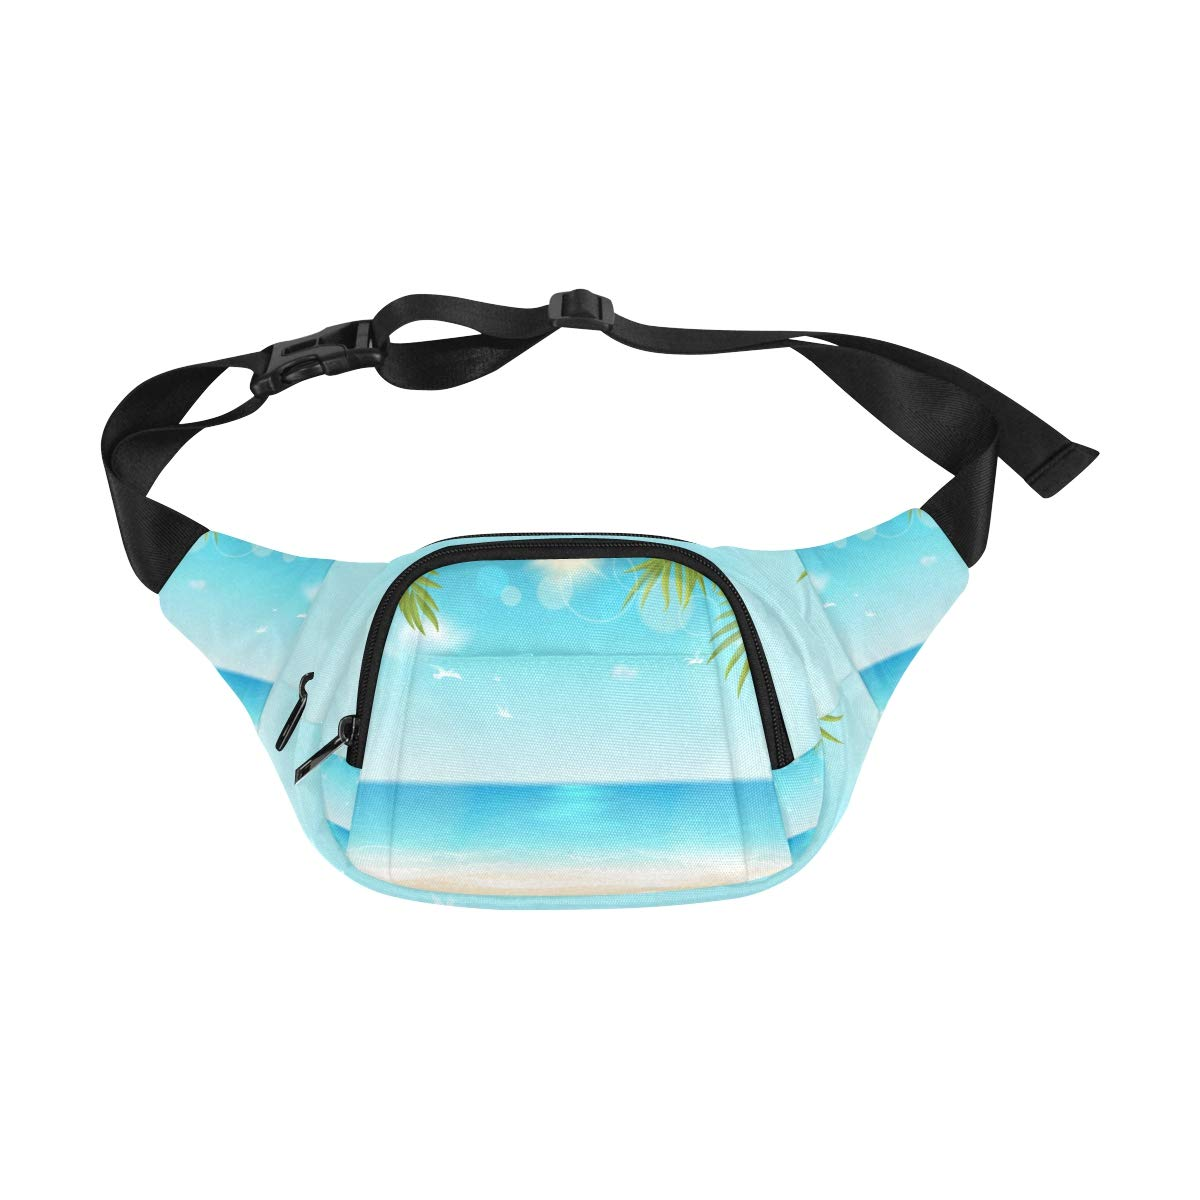 Summer Beach Birds-eye View Paper Style Fenny Packs Waist Bags Adjustable Belt Waterproof Nylon Travel Running Sport Vacation Party For Men Women Boys Girls Kids